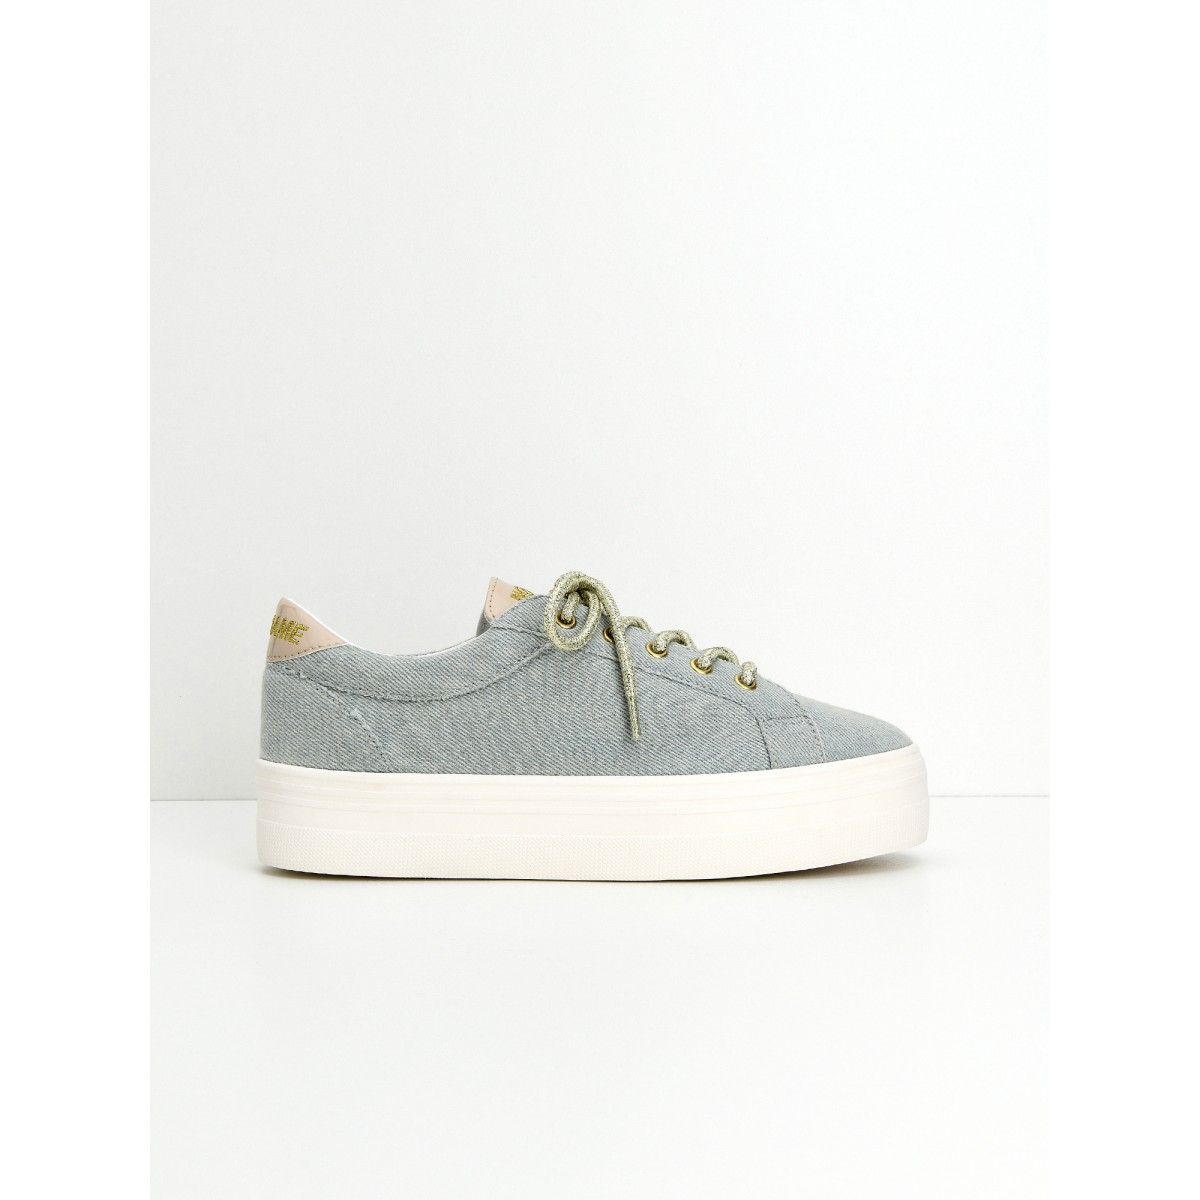 Marques Chaussure femme No Name femme Plato Bridge Denim Bleach